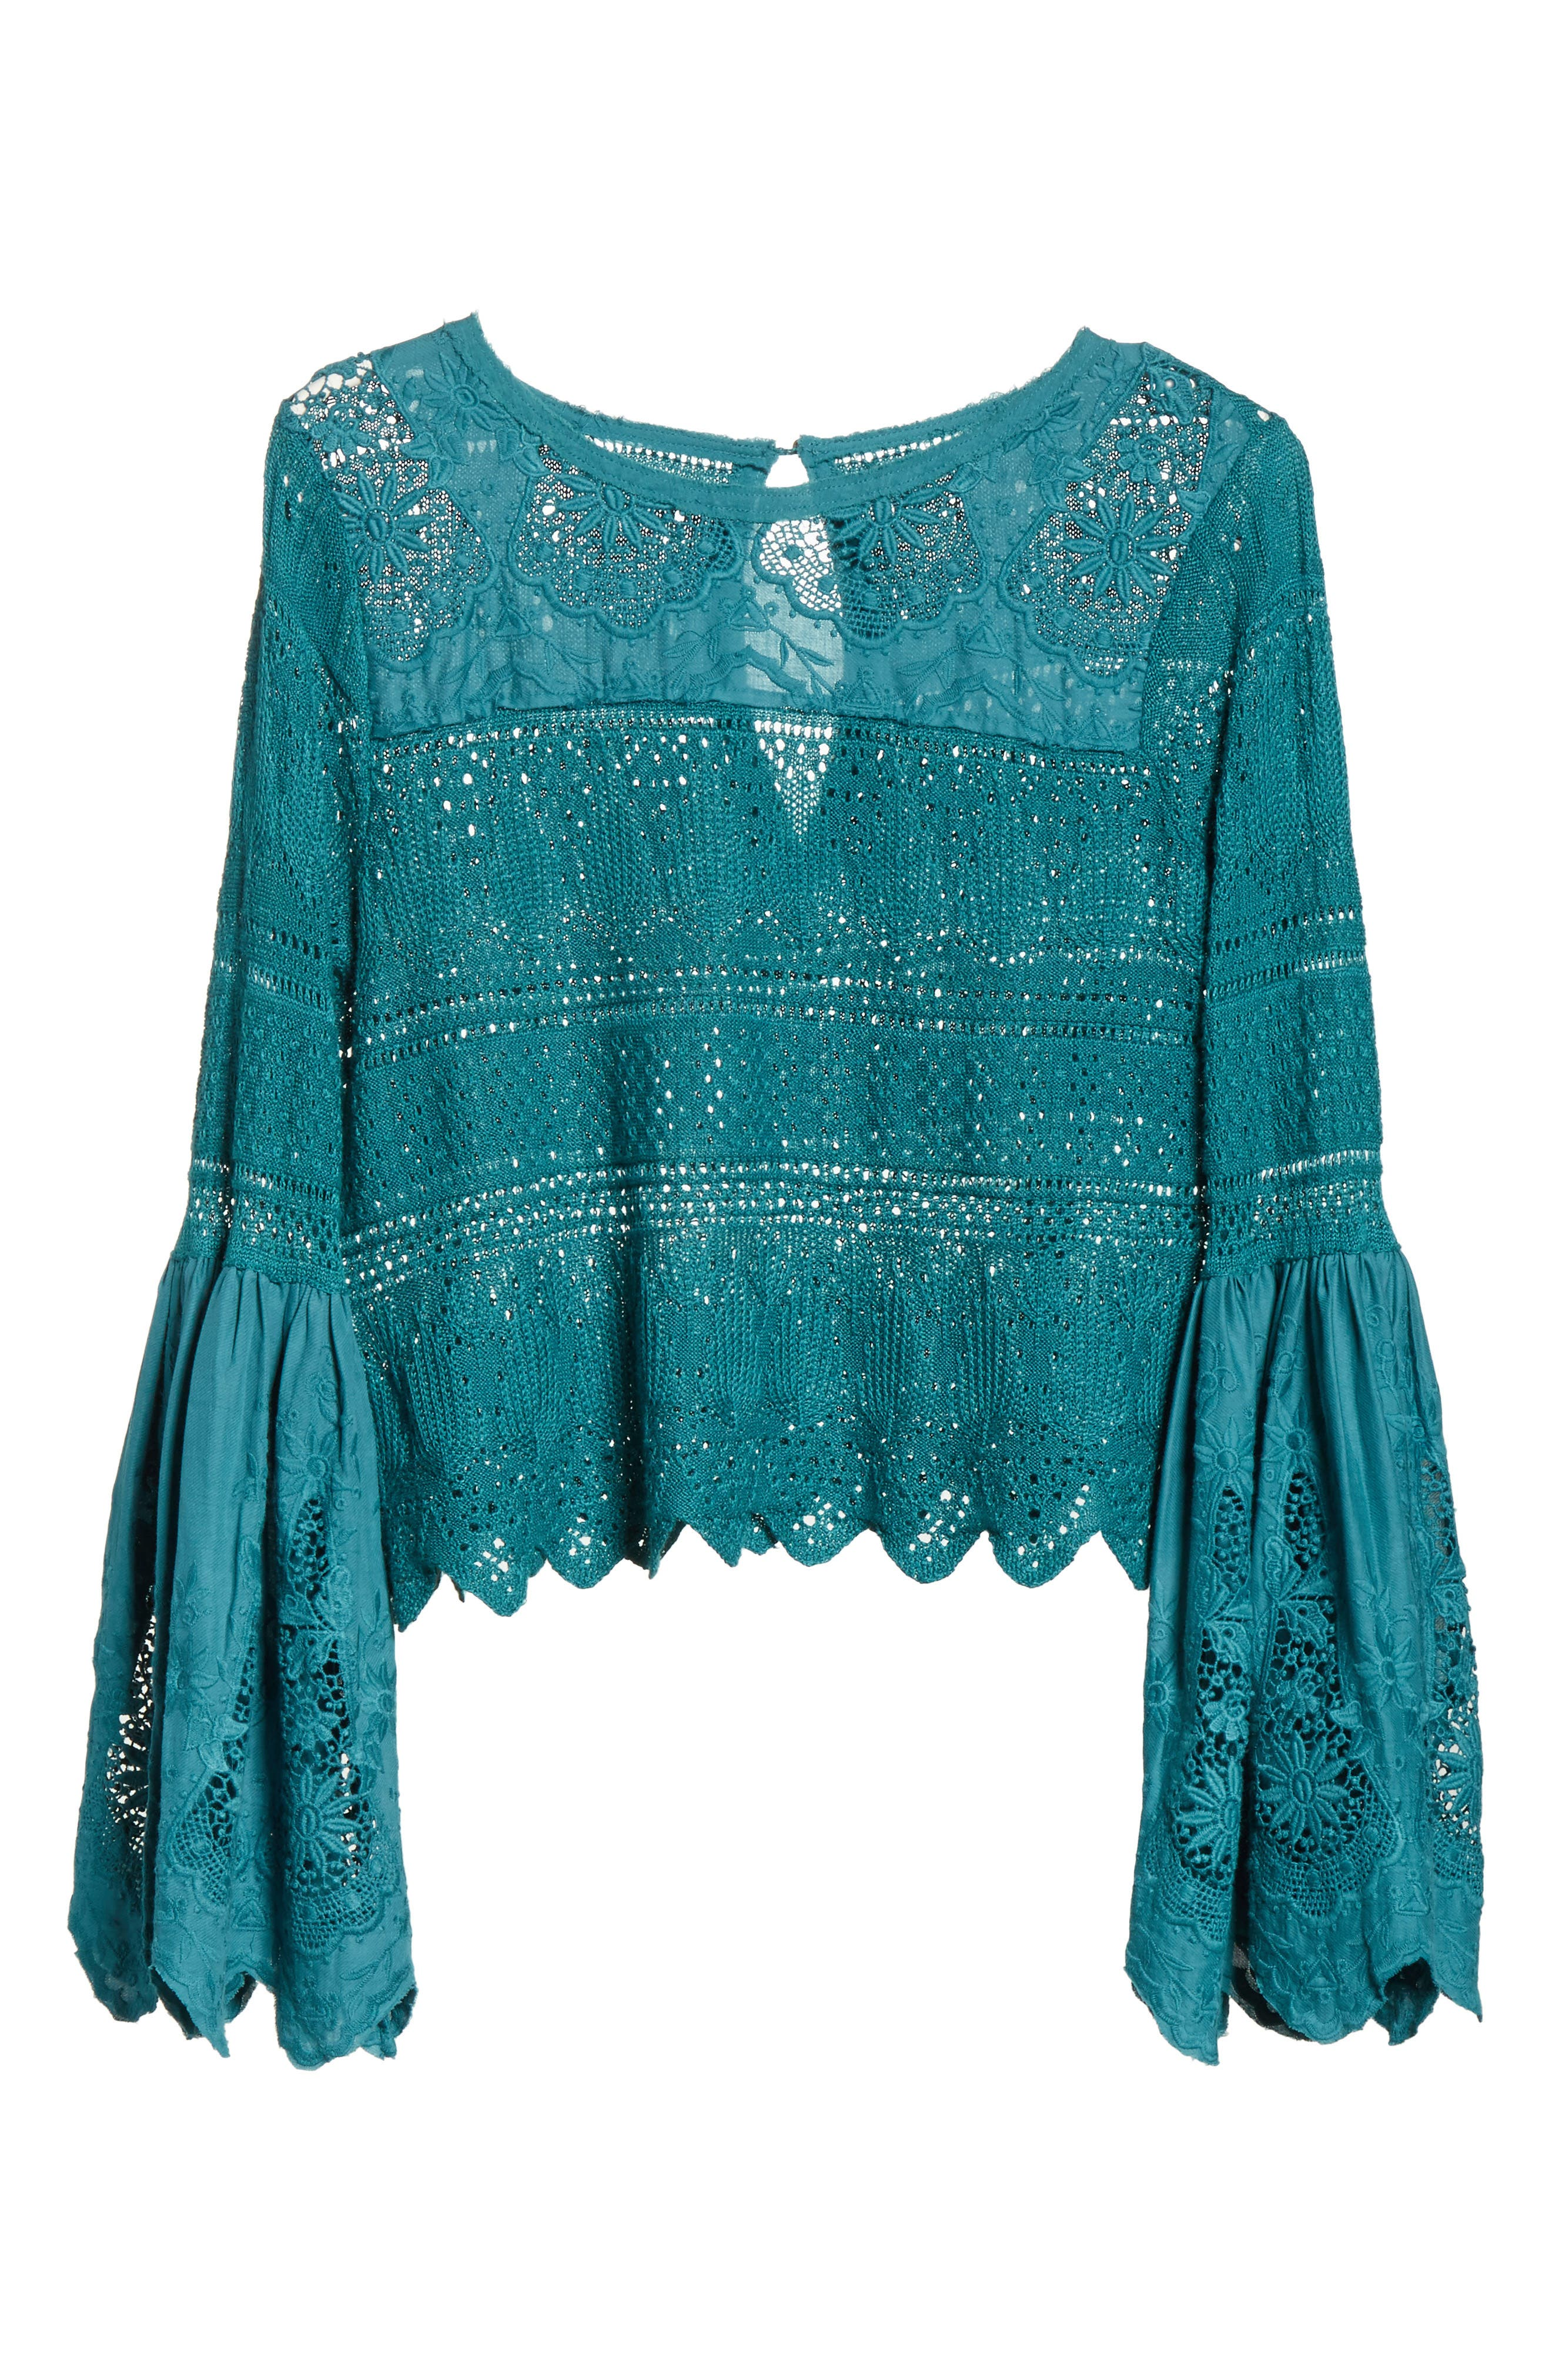 Once Upon a Time Lace Top,                             Alternate thumbnail 22, color,